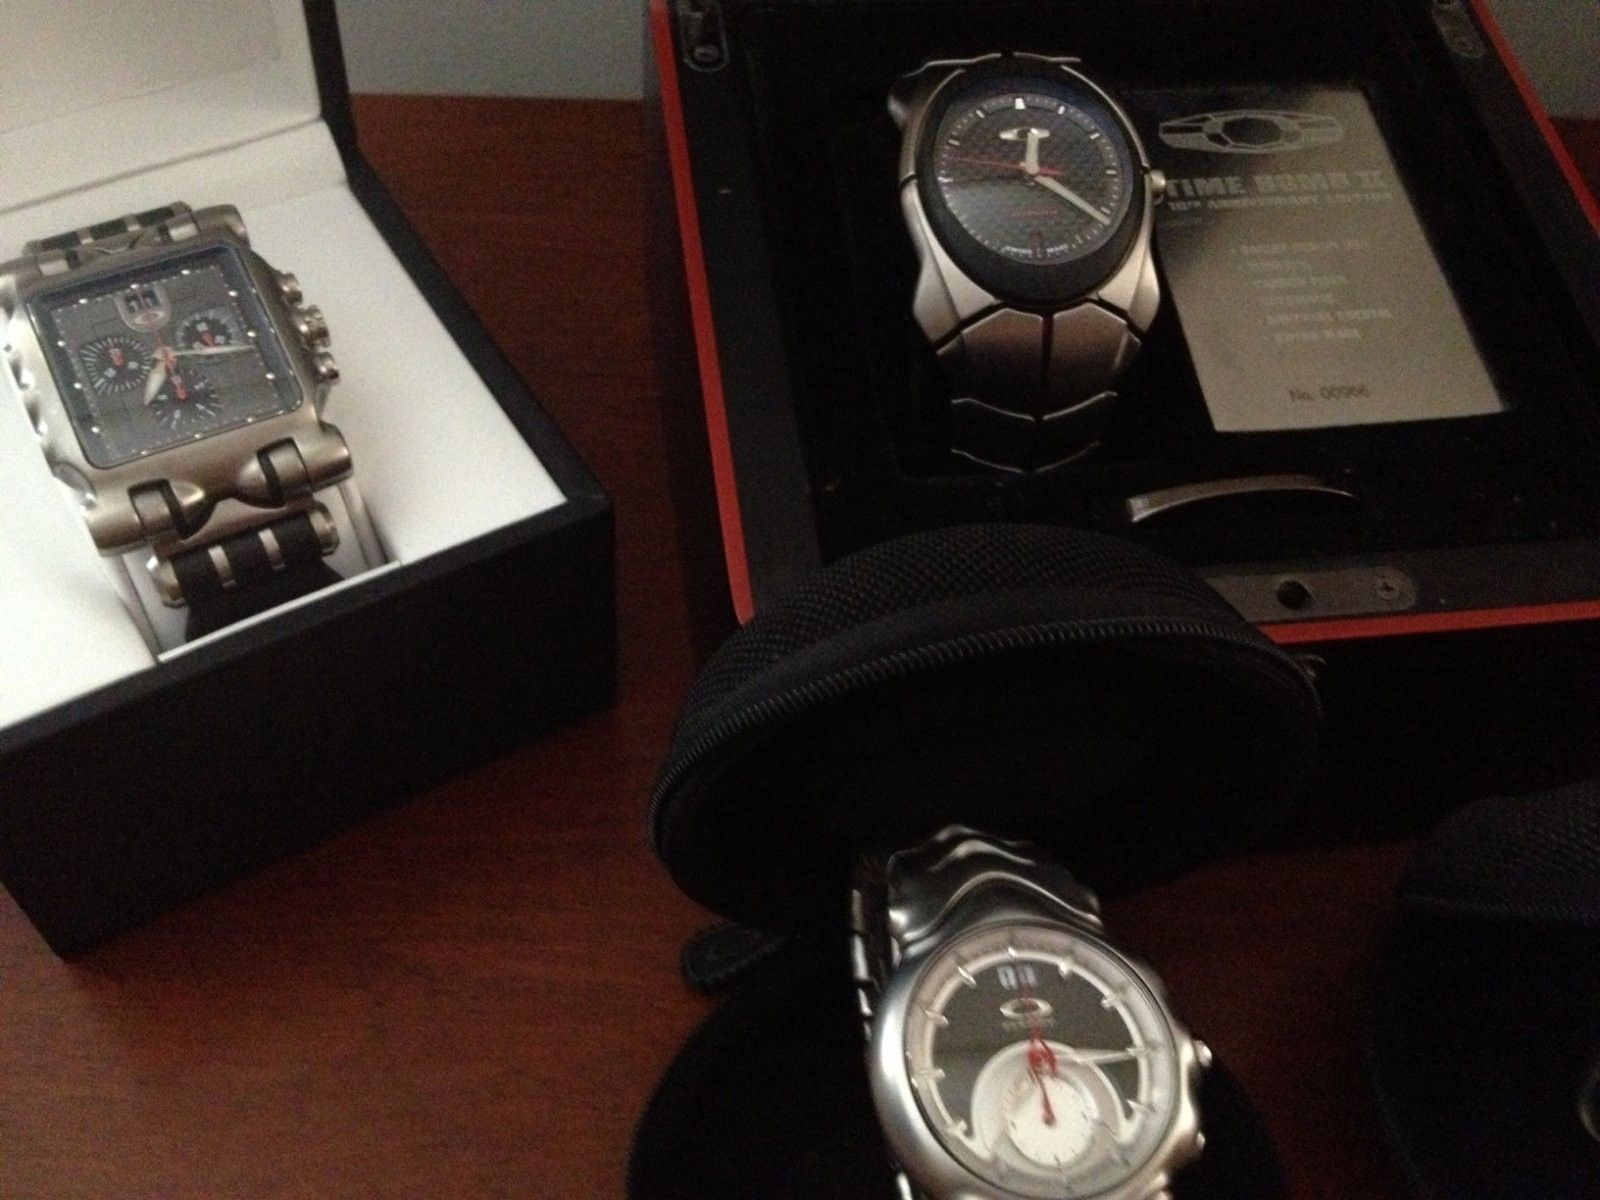 My Oakley Watch Collection - watch collection 3.jpg